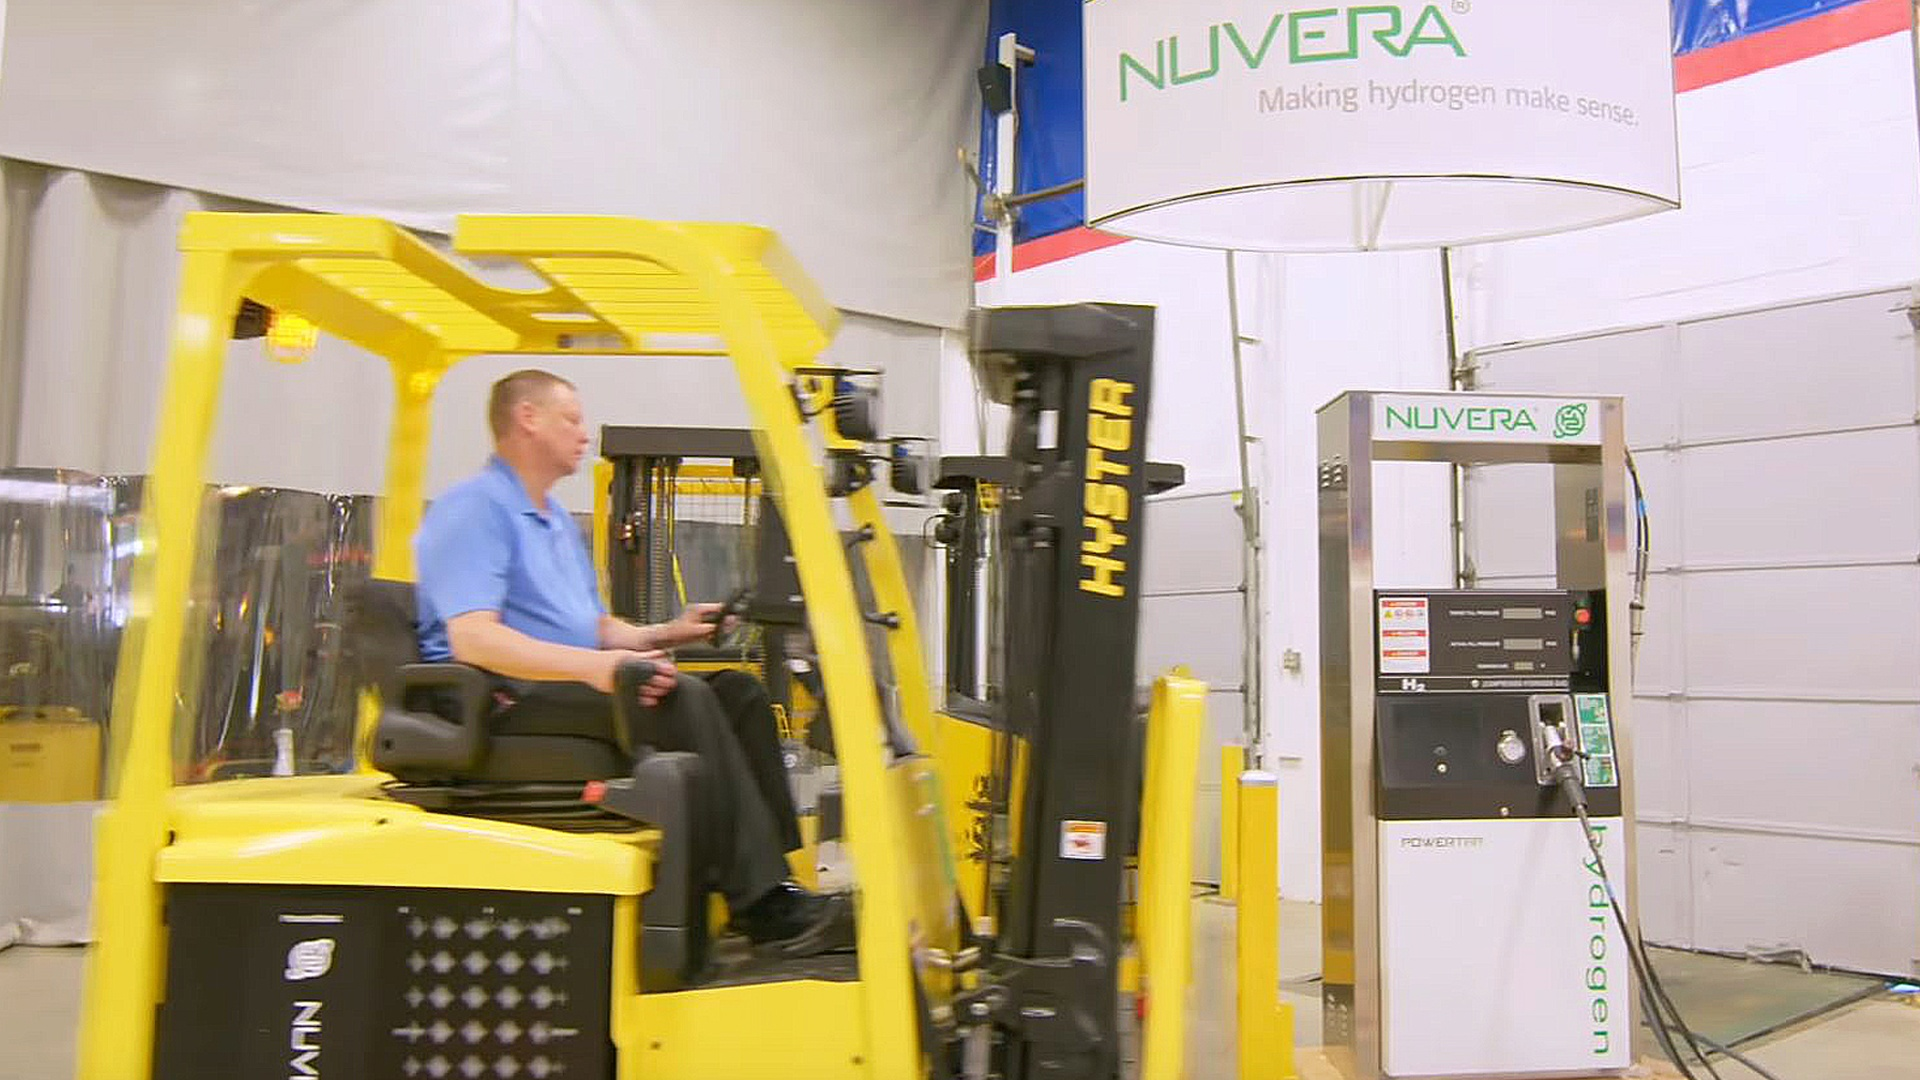 Stars of Technology Event to feature Fast-Fueled Nuvera® Fuel Cell Systems for Electric Lift Trucks